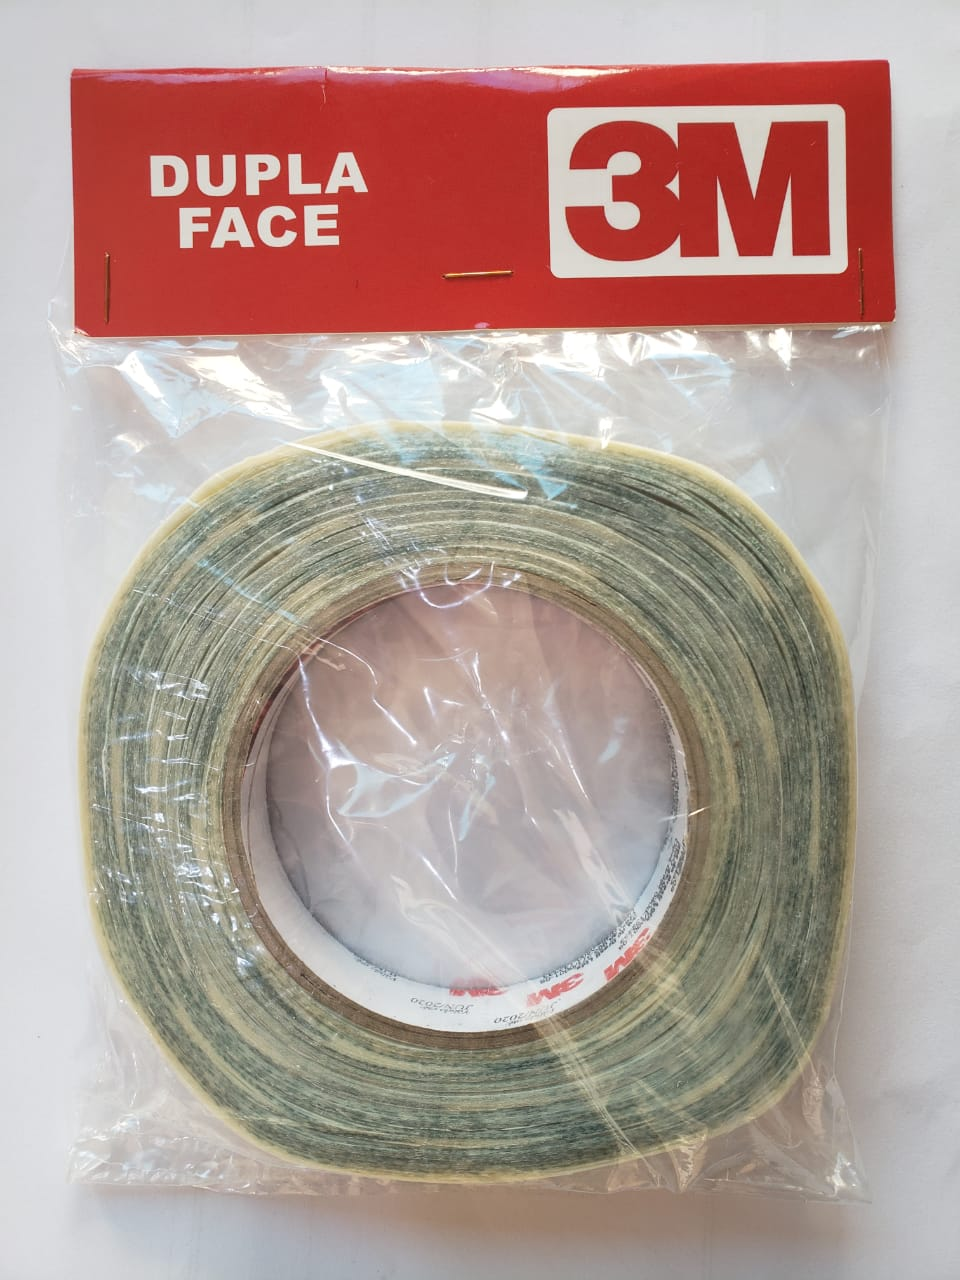 Fita Marca Scoot 3m Dupla Face 18 mm x 55 mts